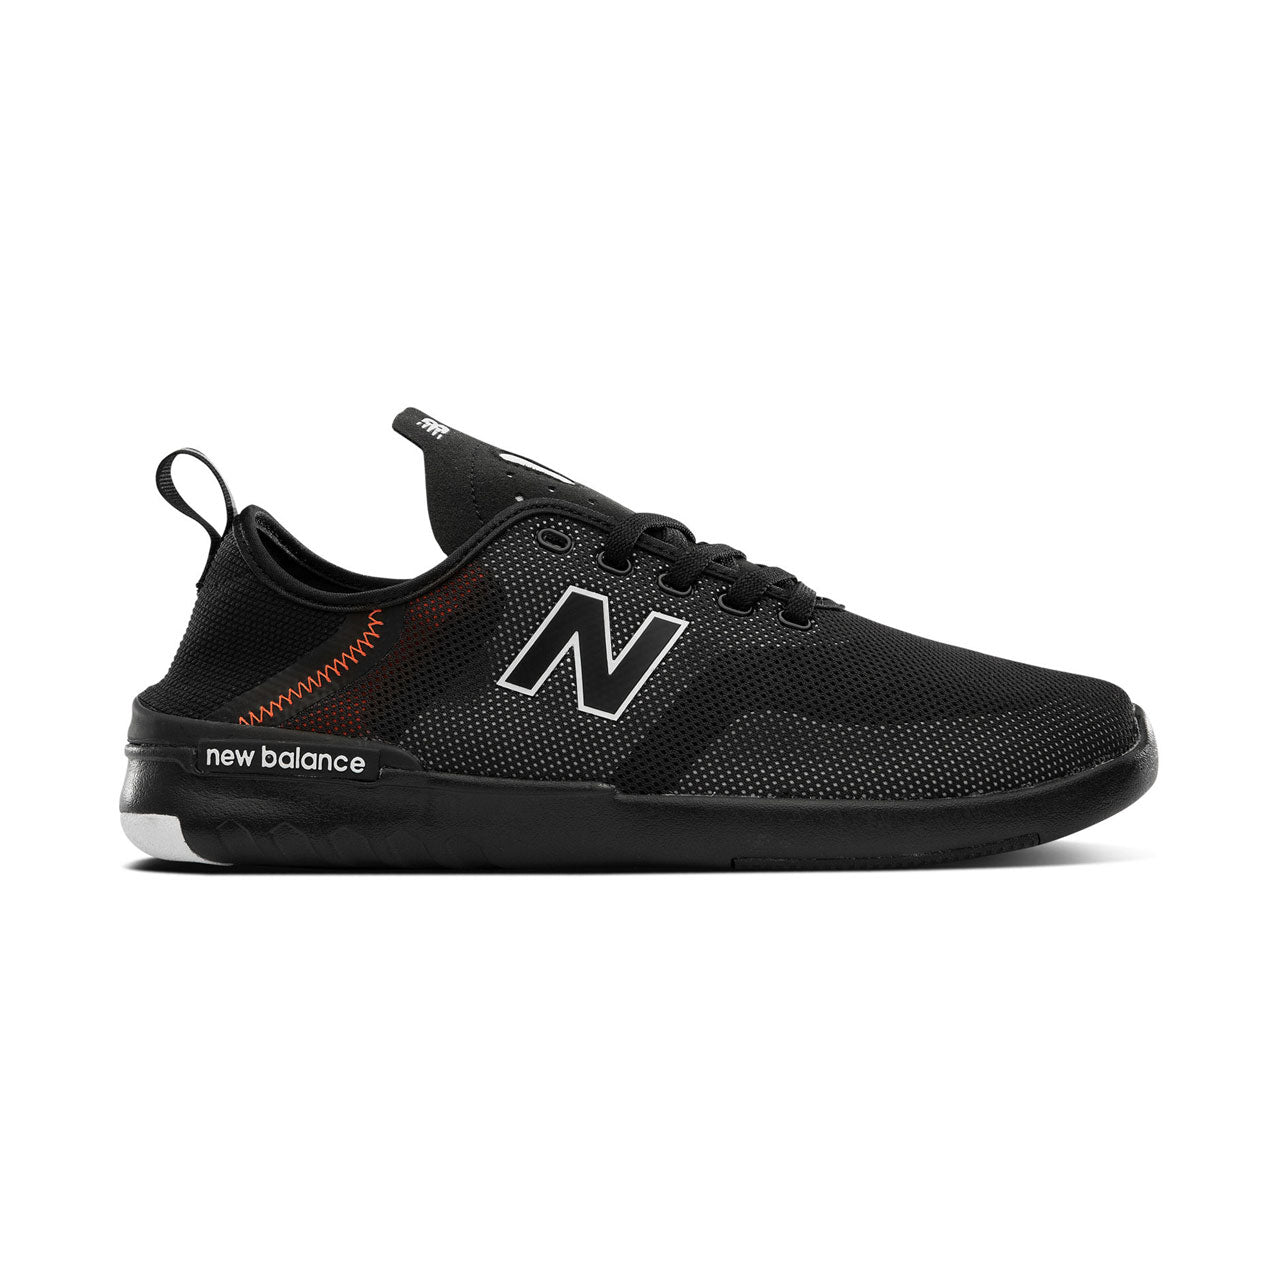 New Balance All Coast V2 Sneakers